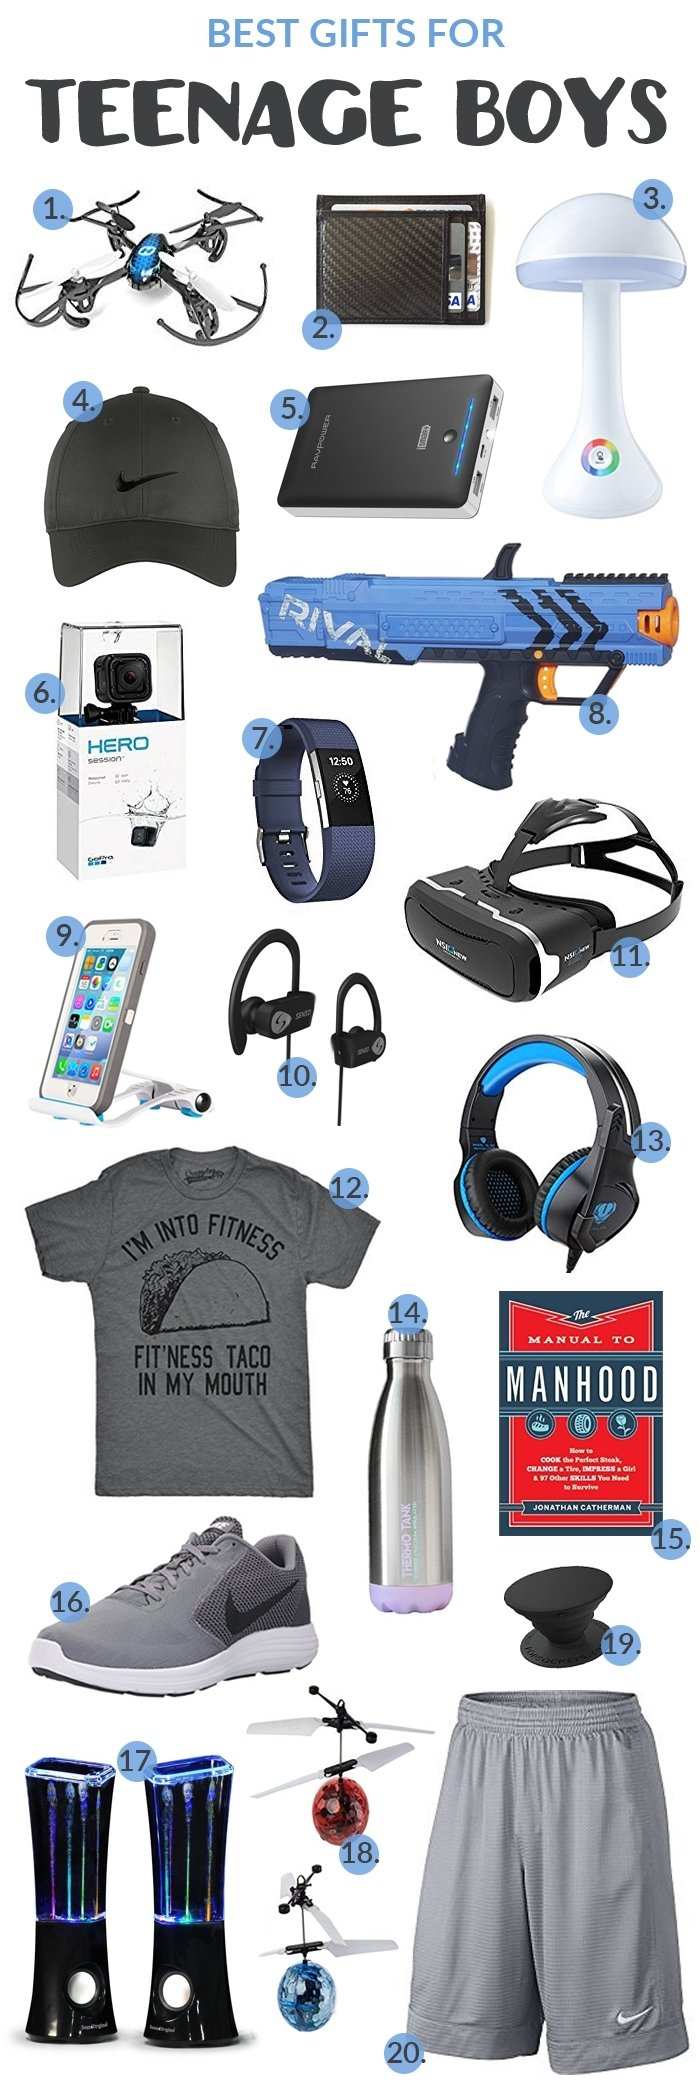 10 Fashionable Cool Gift Ideas For Teenage Guys holiday gift guides whatthegirlssay 2021